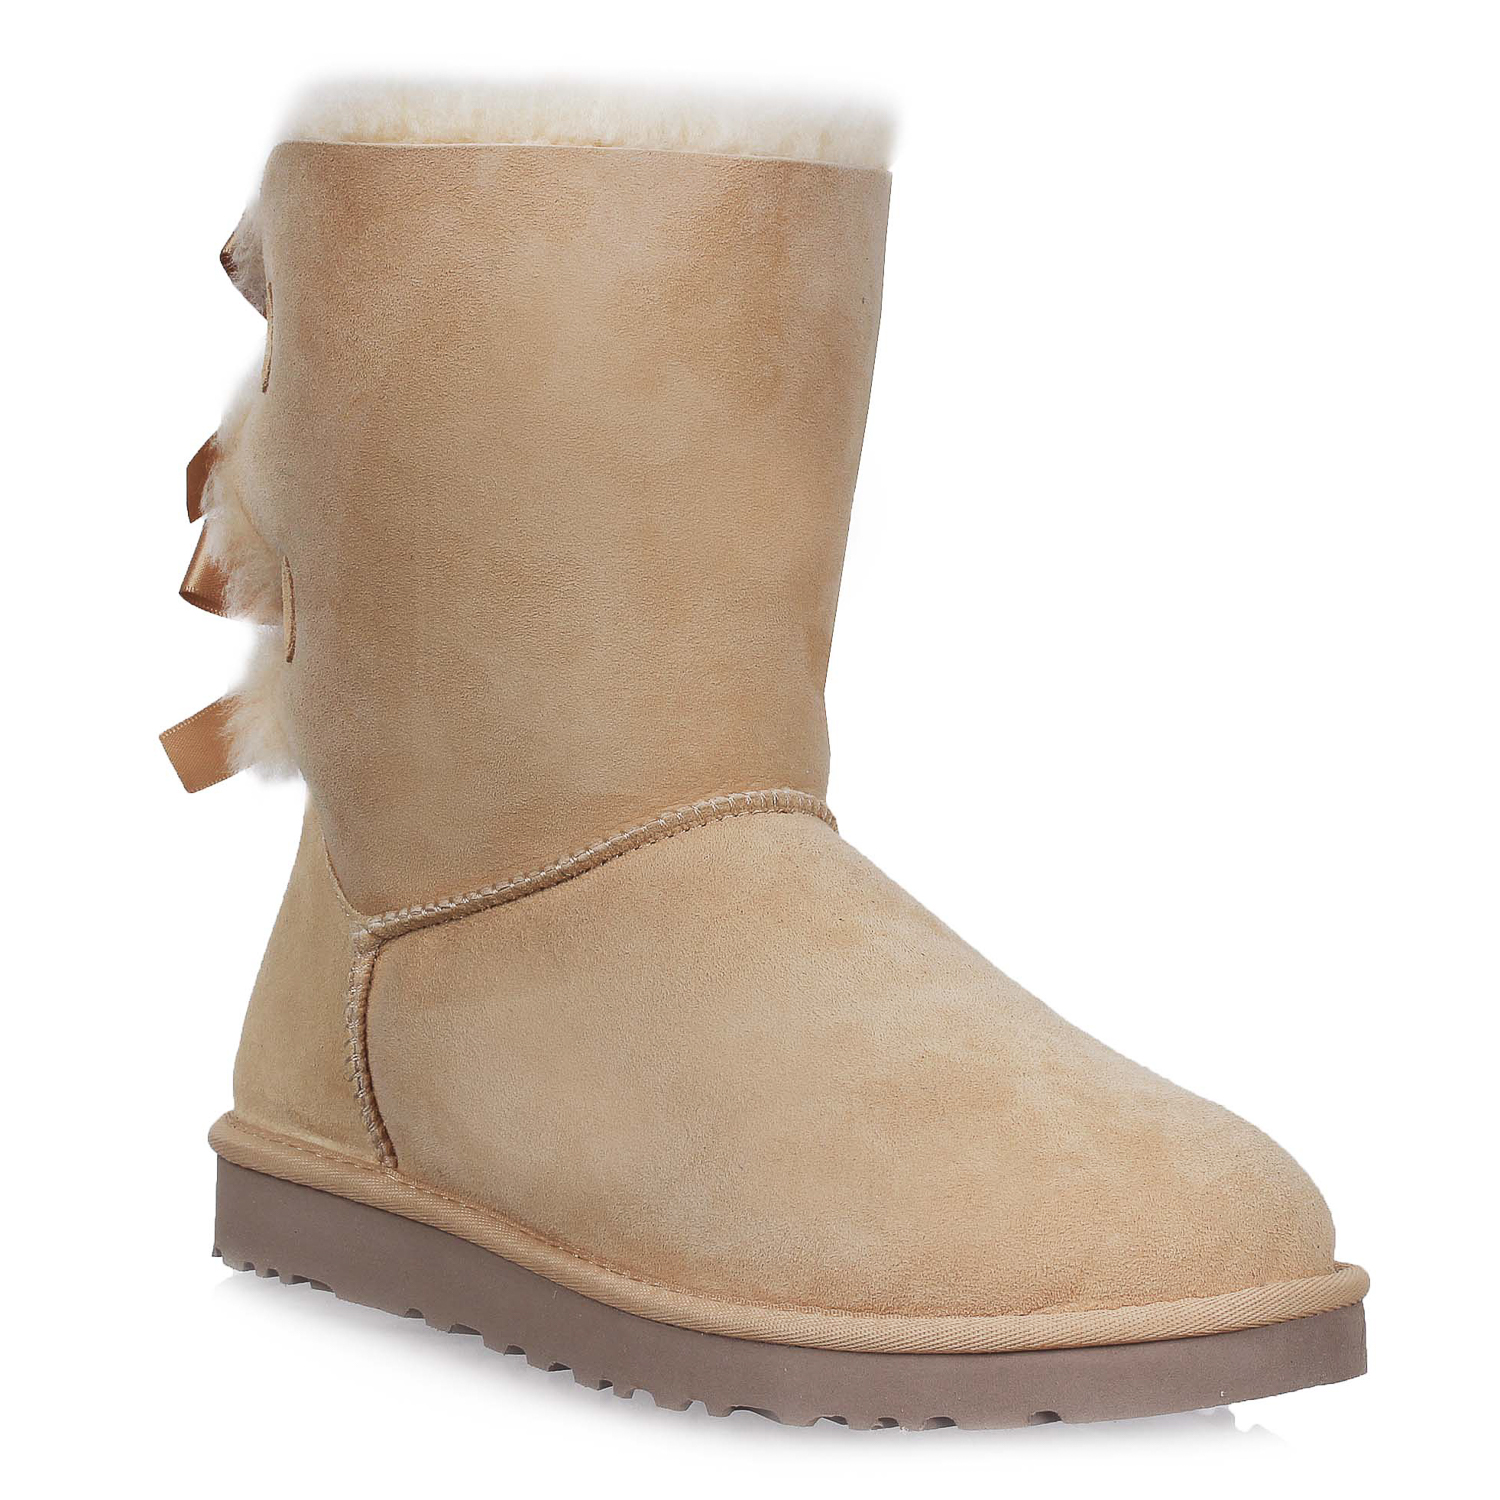 NIB New Ugg Australia 1002954 Femmes Bottes Bailey 16195 Bow 1002954 Femmes Sand Shoes | 865ee41 - vendingmatic.info